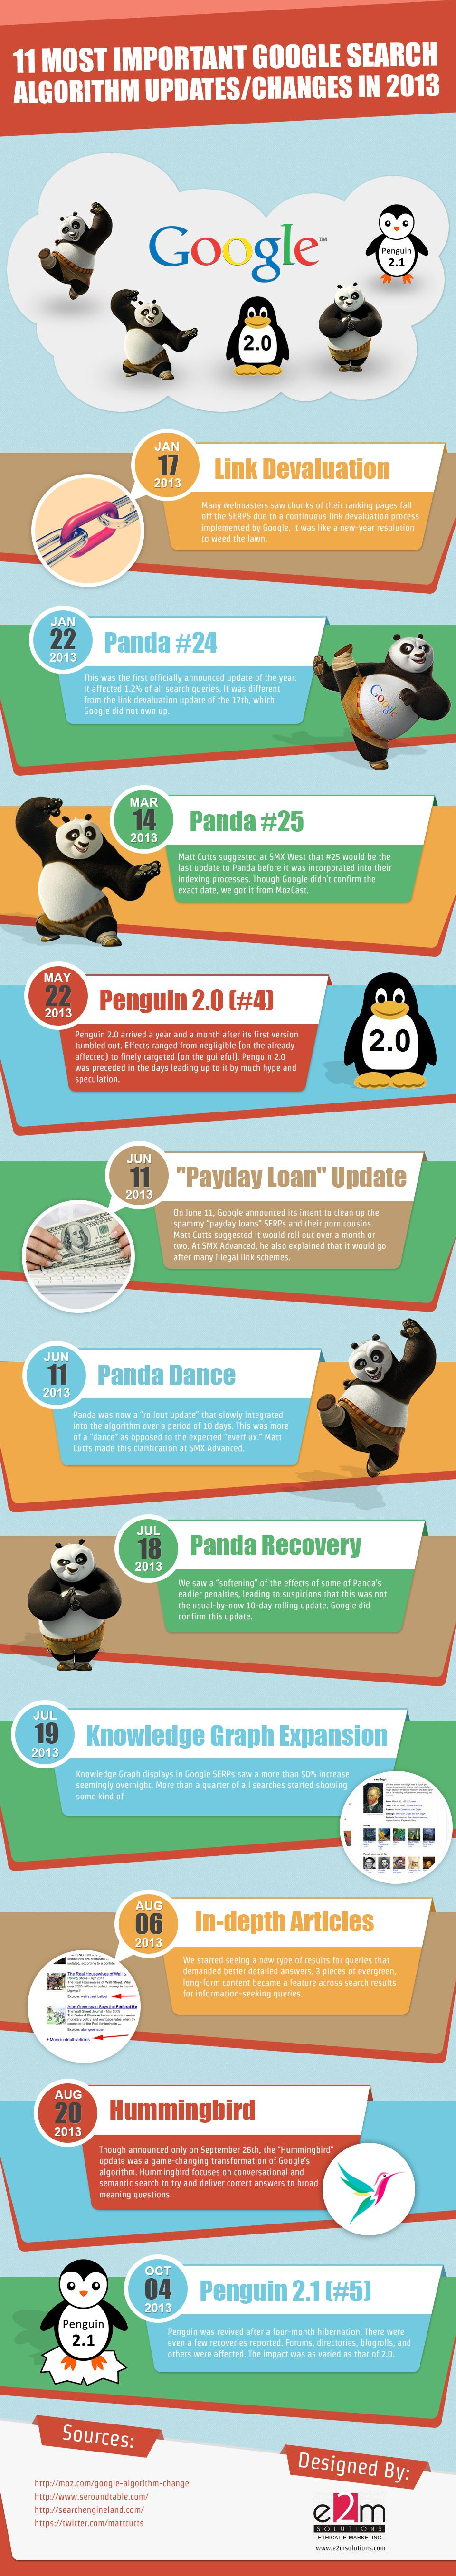 Google Changes in 2013 [Infographic]